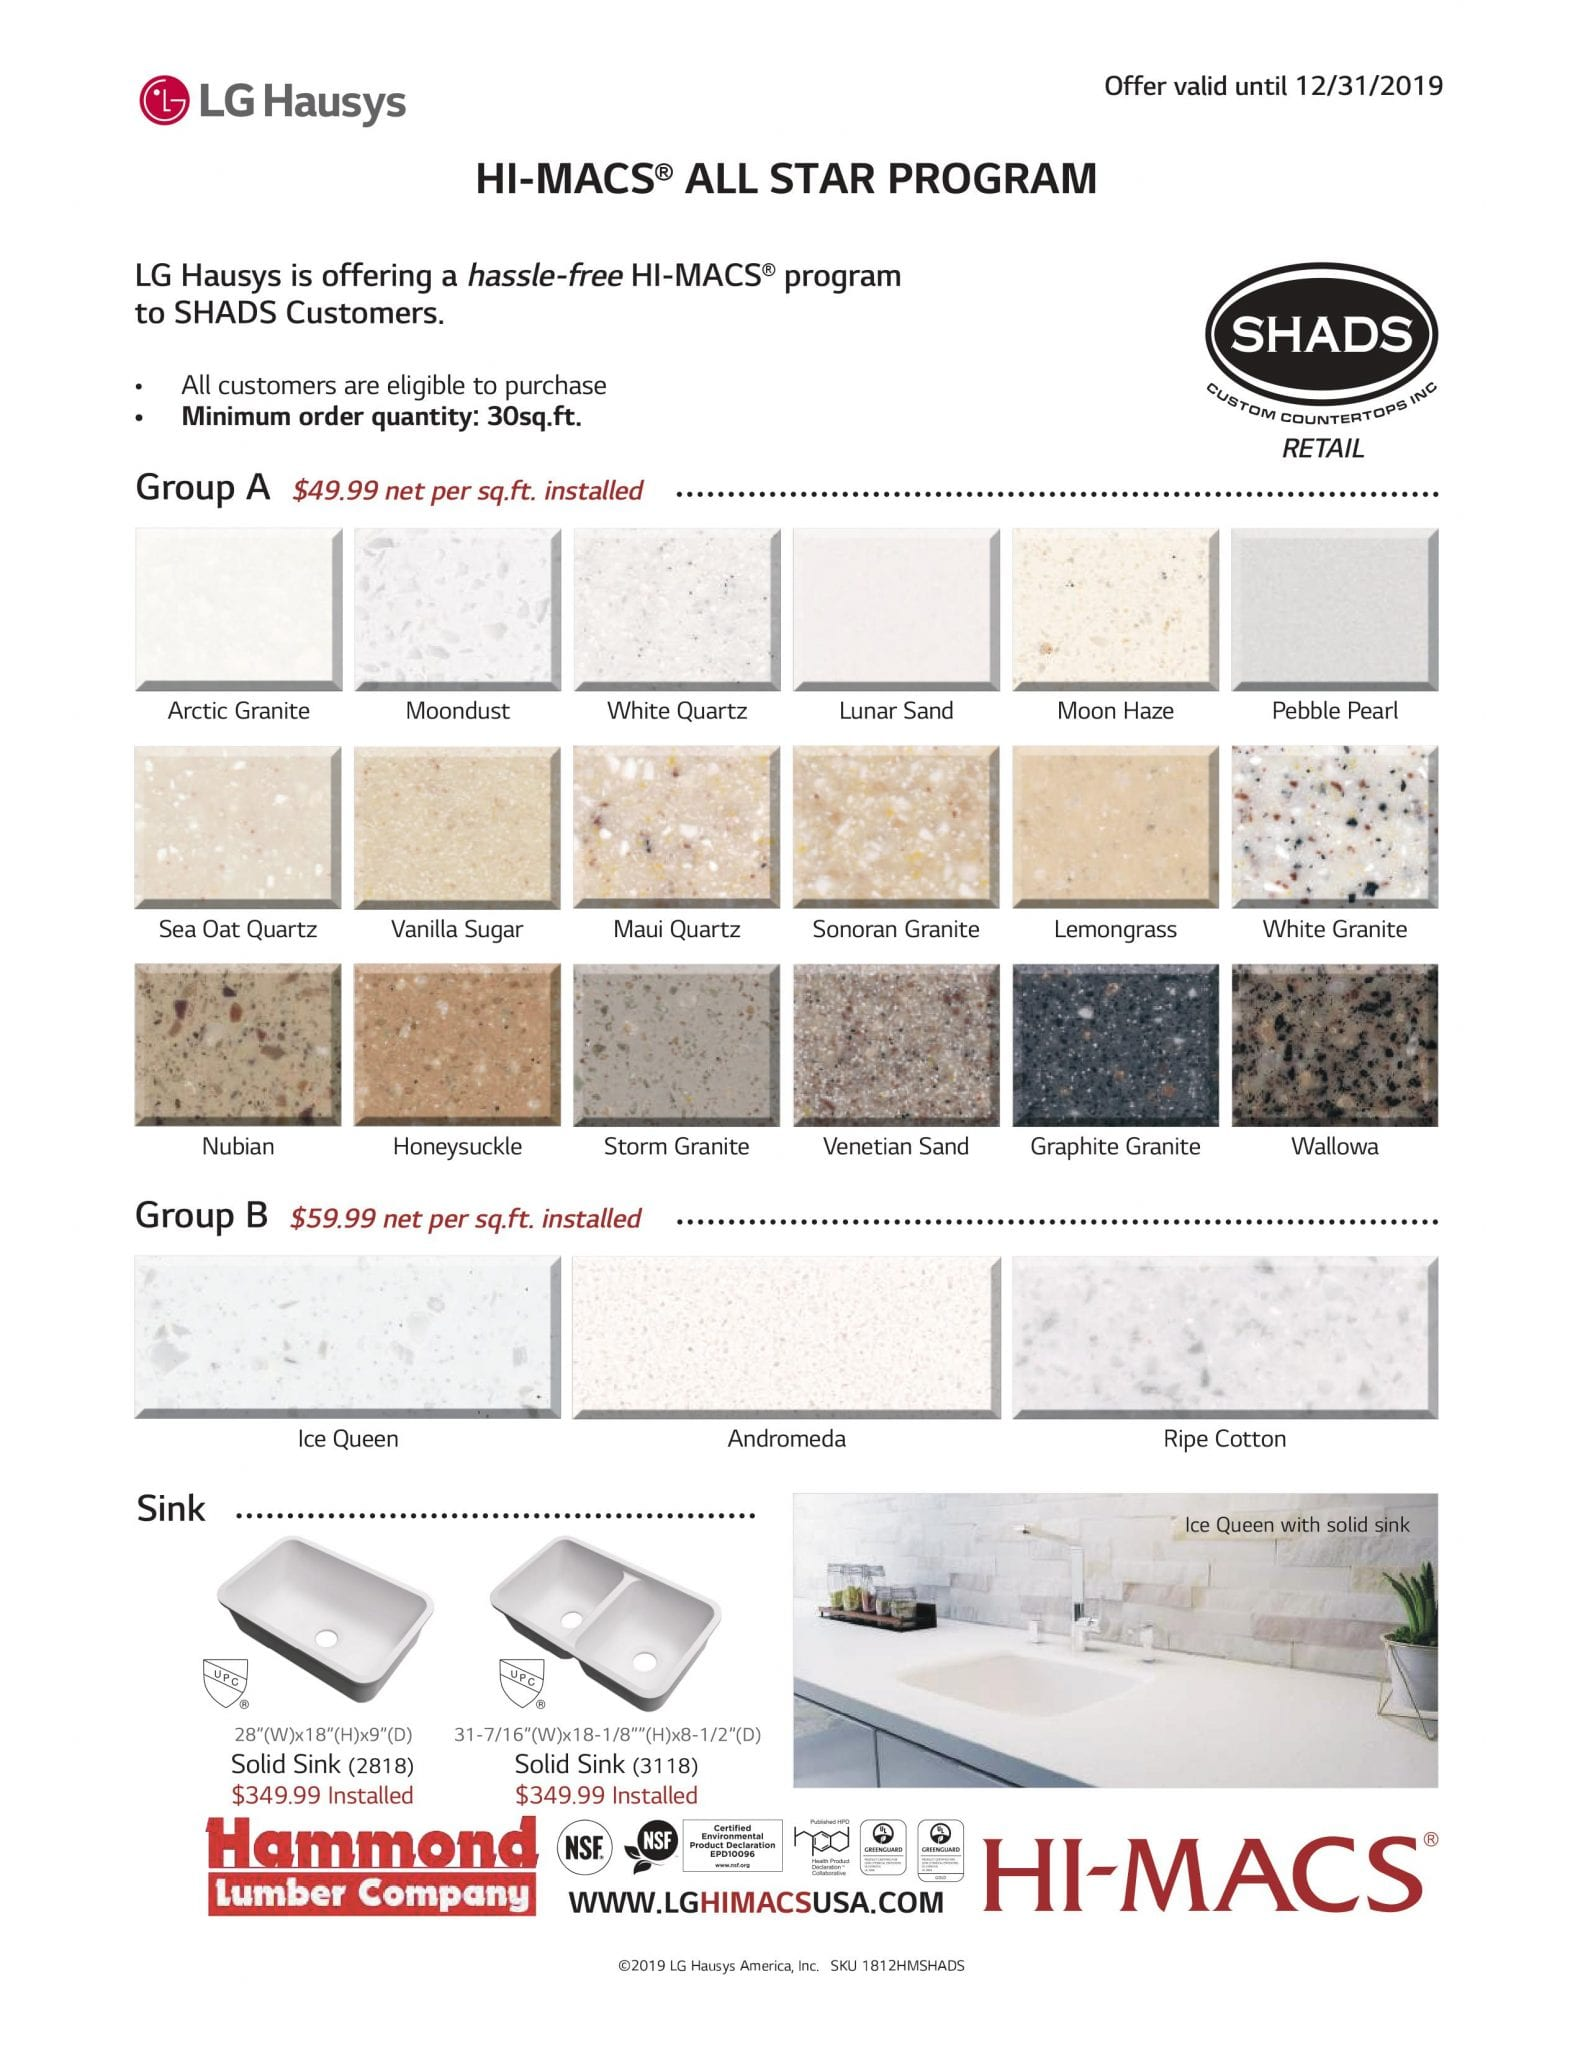 HI-MACS Shads countertop flyer hammond lumber